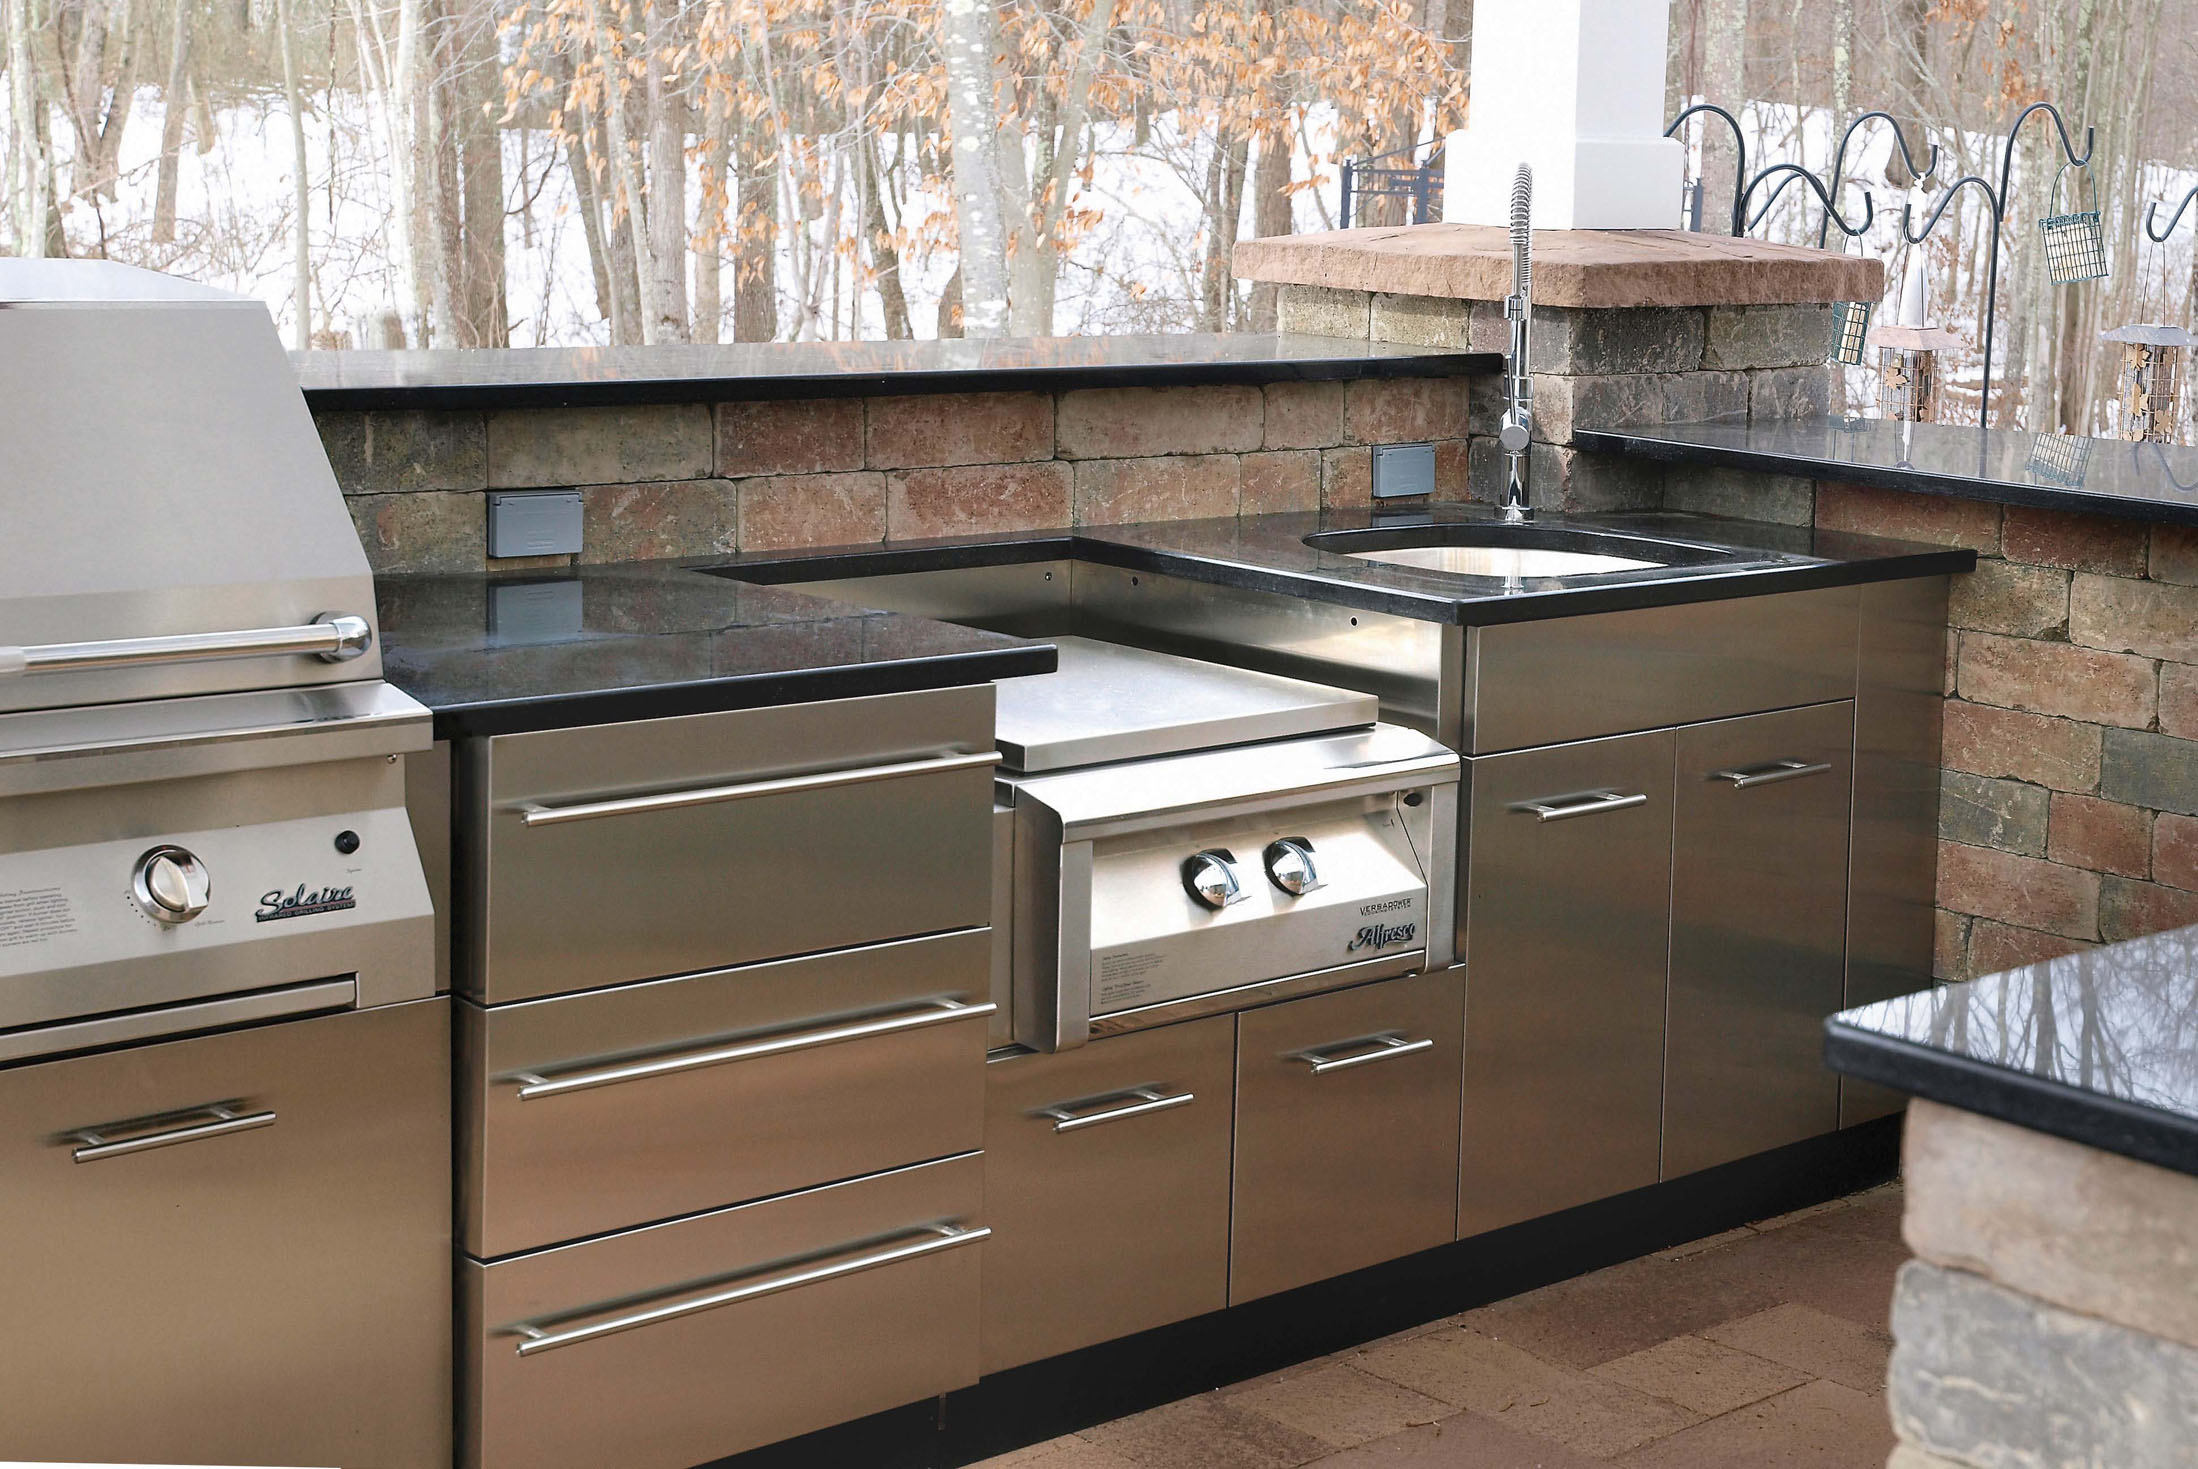 Outdoor stainless kitchen in winter in ct danver for Outdoor kitchen cabinets